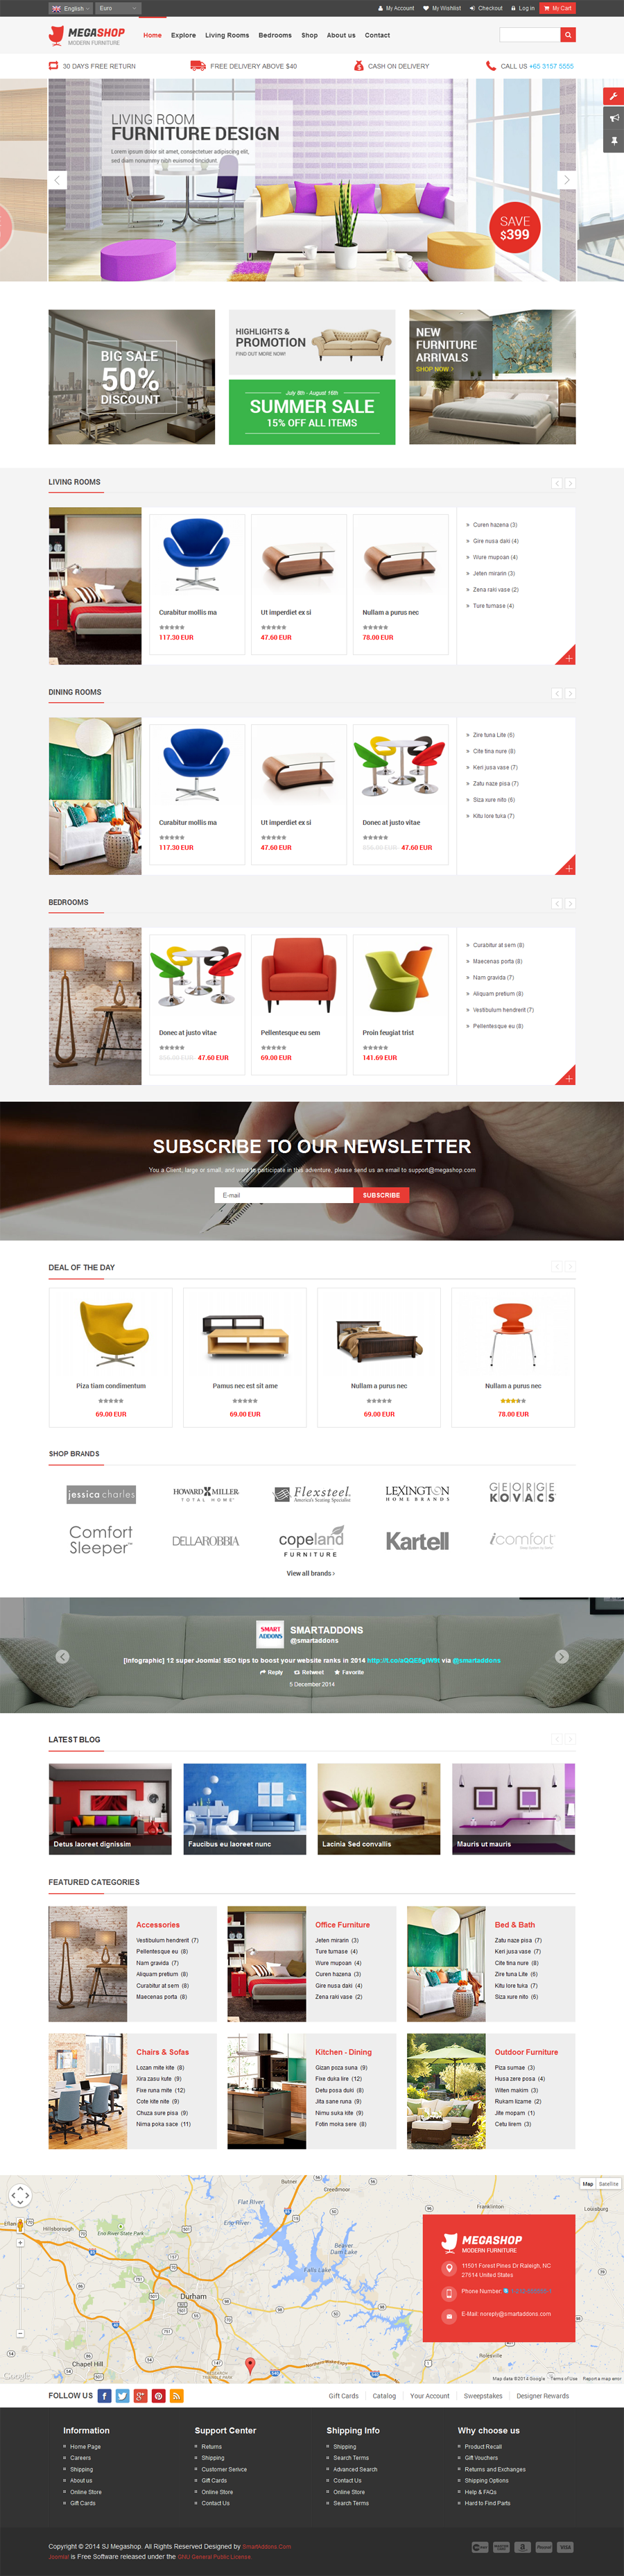 SJ MegaShop - Responsive eCommerce Joomla Template - 05_red_color.png